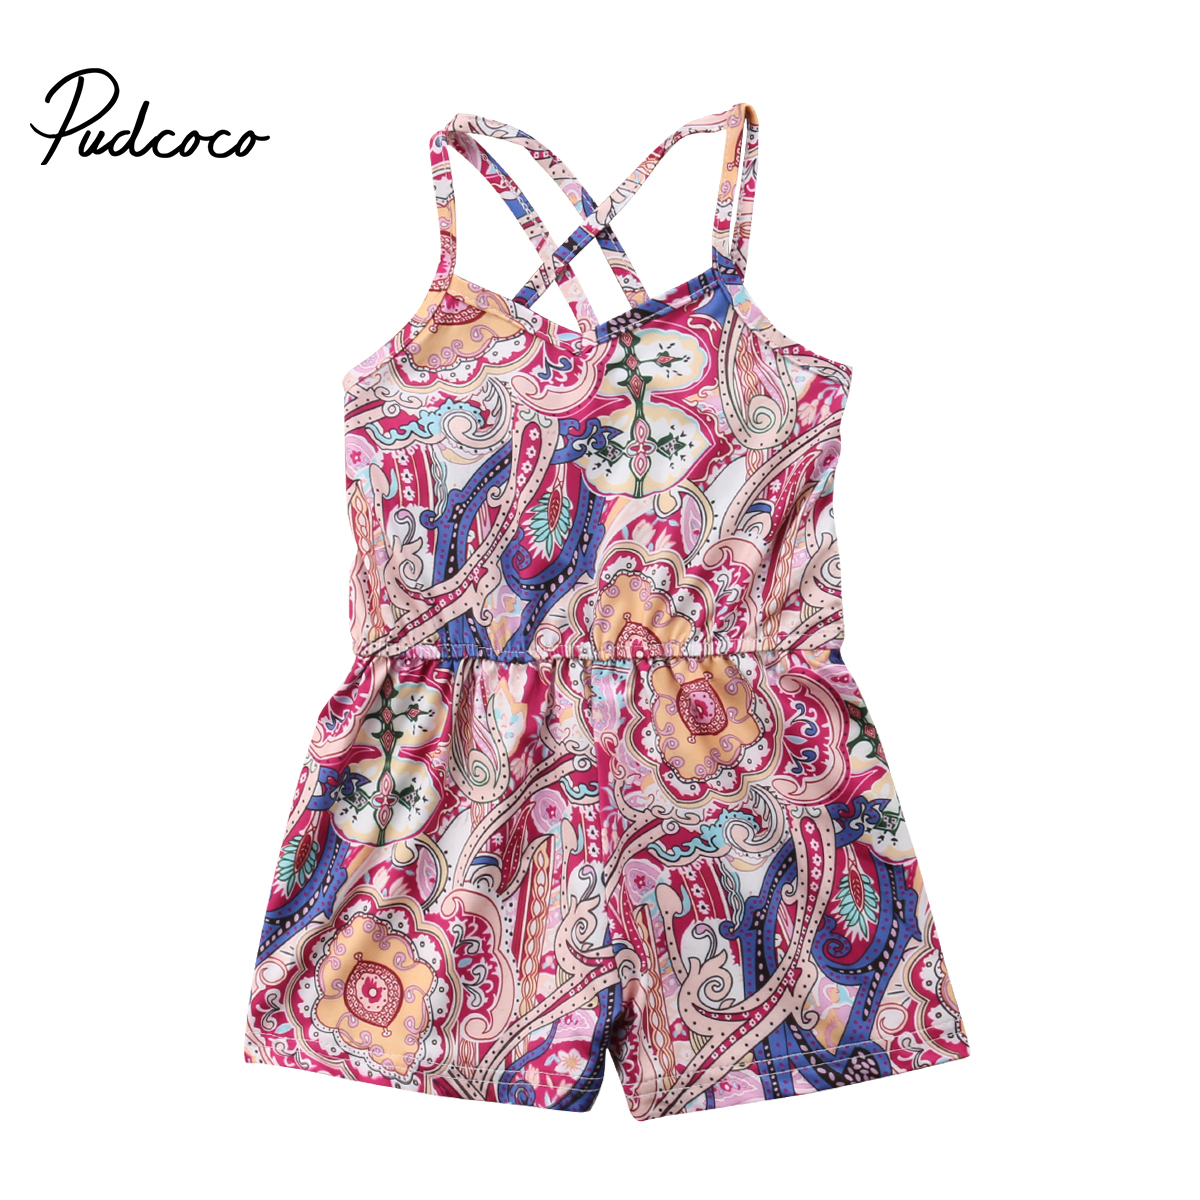 Pudcoco 2018 Casual Kids Baby Girls Romper Floral Braces Backless Boho Print Jumpsuit Sunsuit Summer Clothes Outfits 1-6T